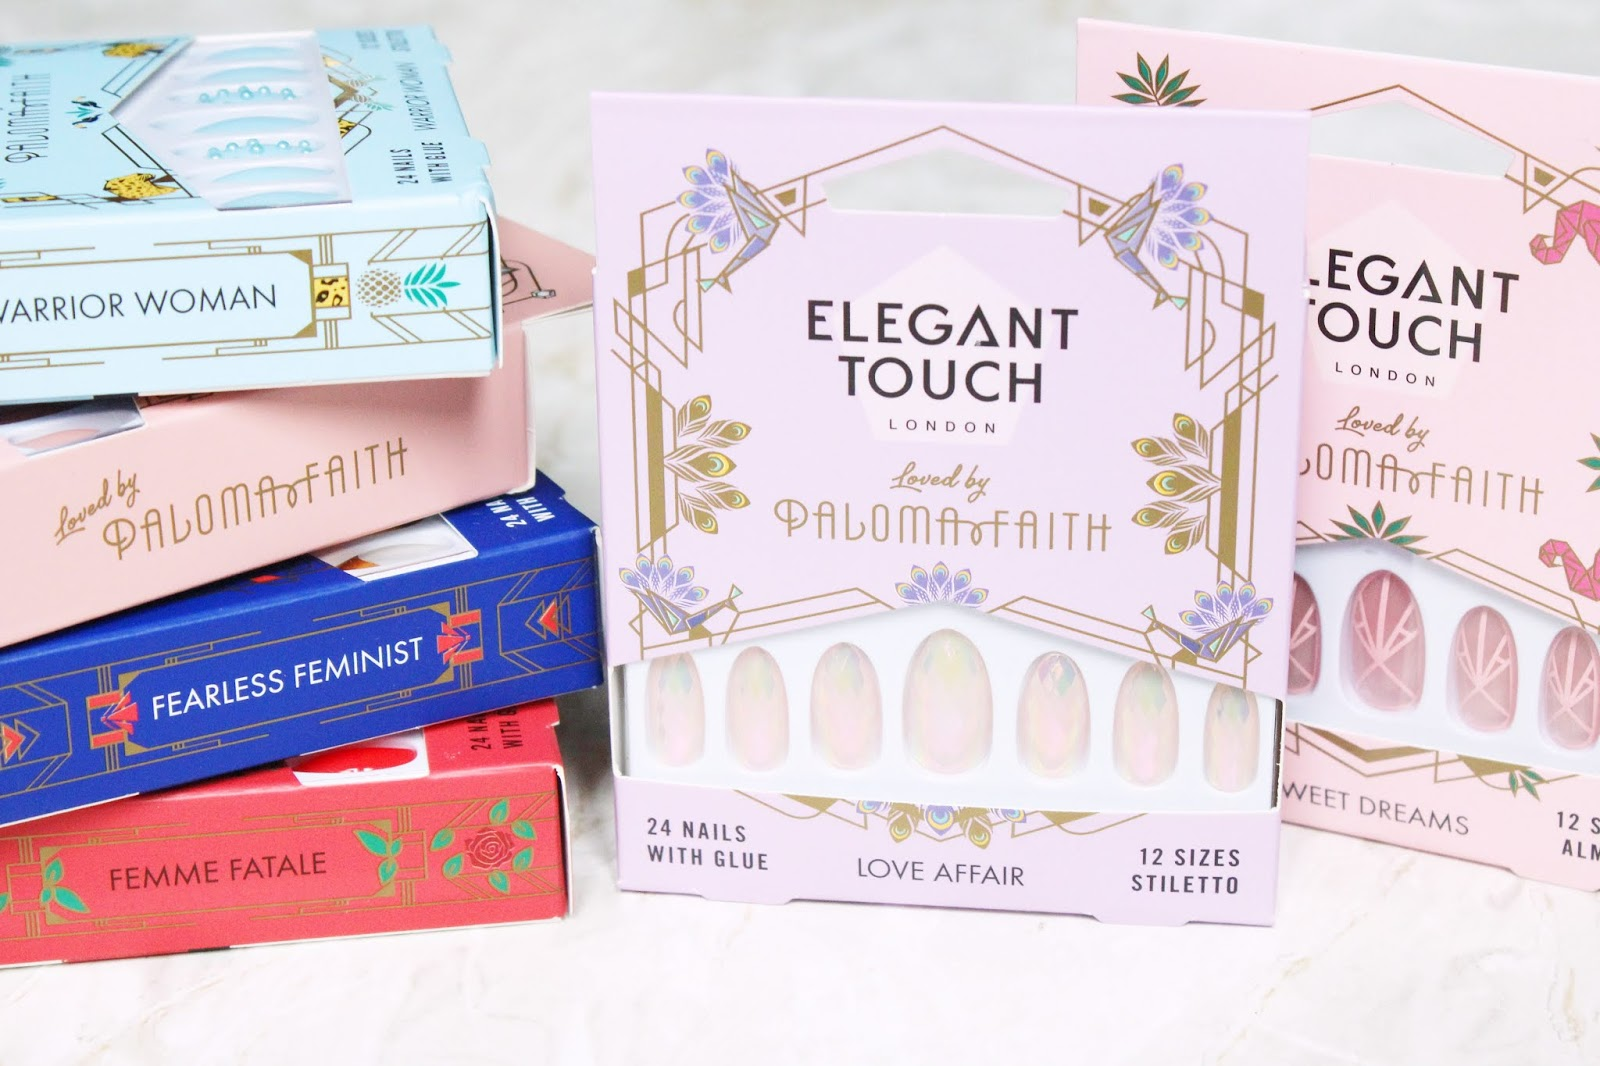 Elegant Touch Loved by Paloma Faith Collection